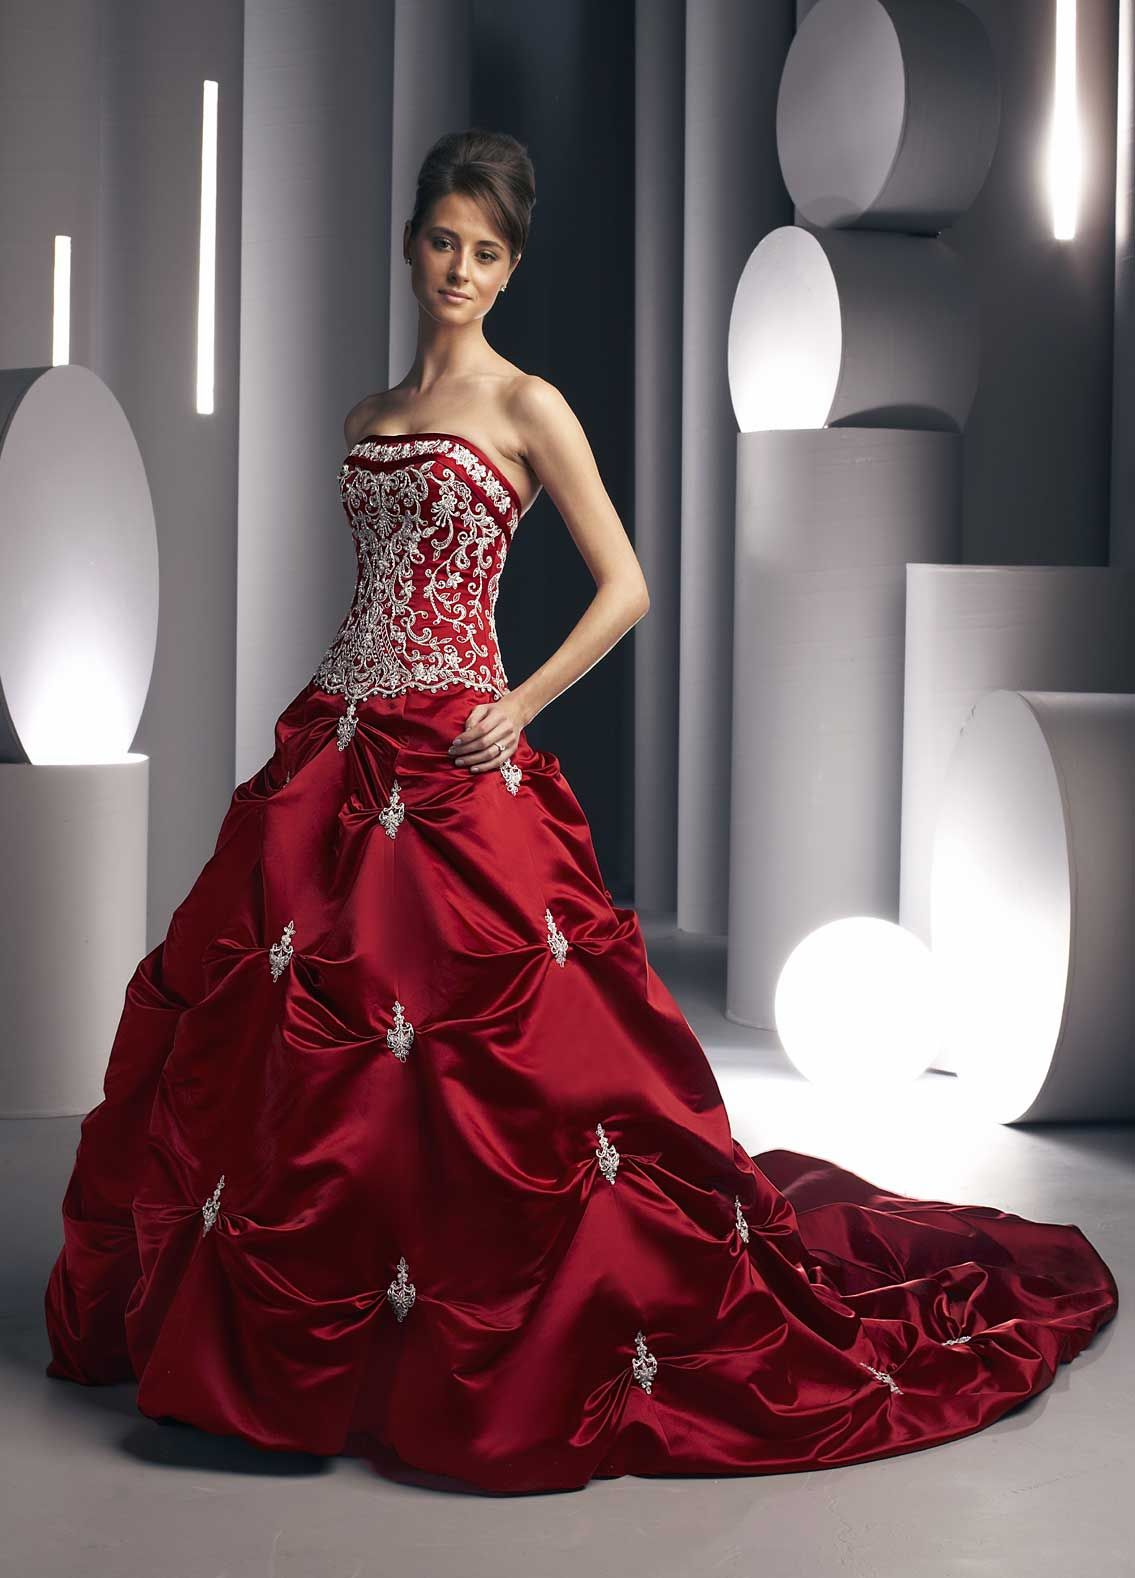 Red ball gown wedding dress  A nontraditional red wedding gown with silver embroidery